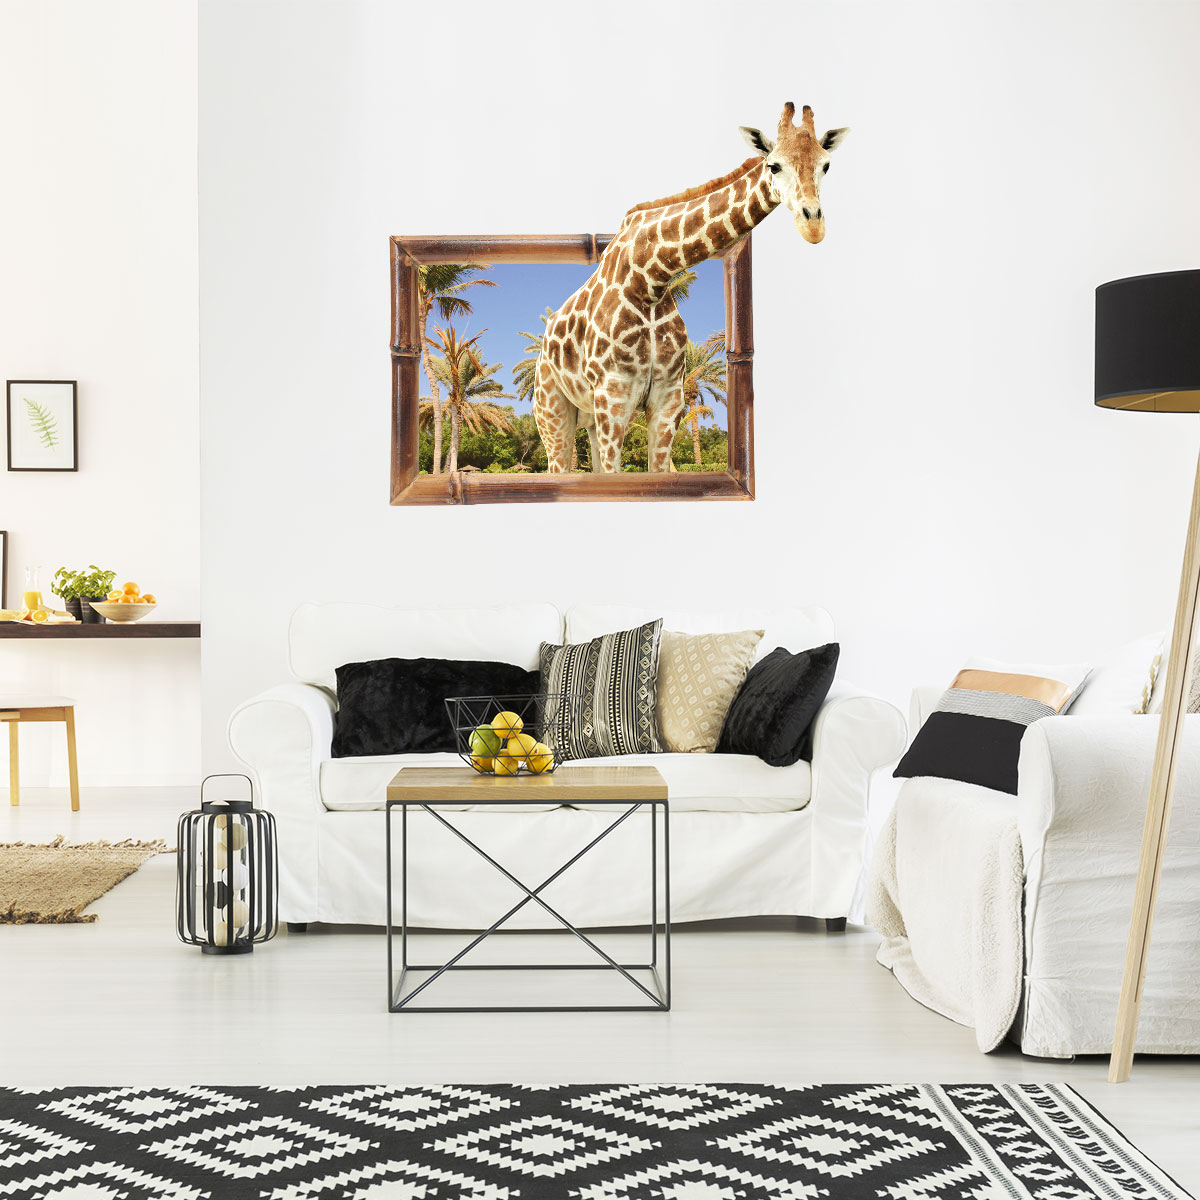 Trompe L Oeil Salon Sticker Trompe L 39oeil Animaux Girafe Stickers Salon